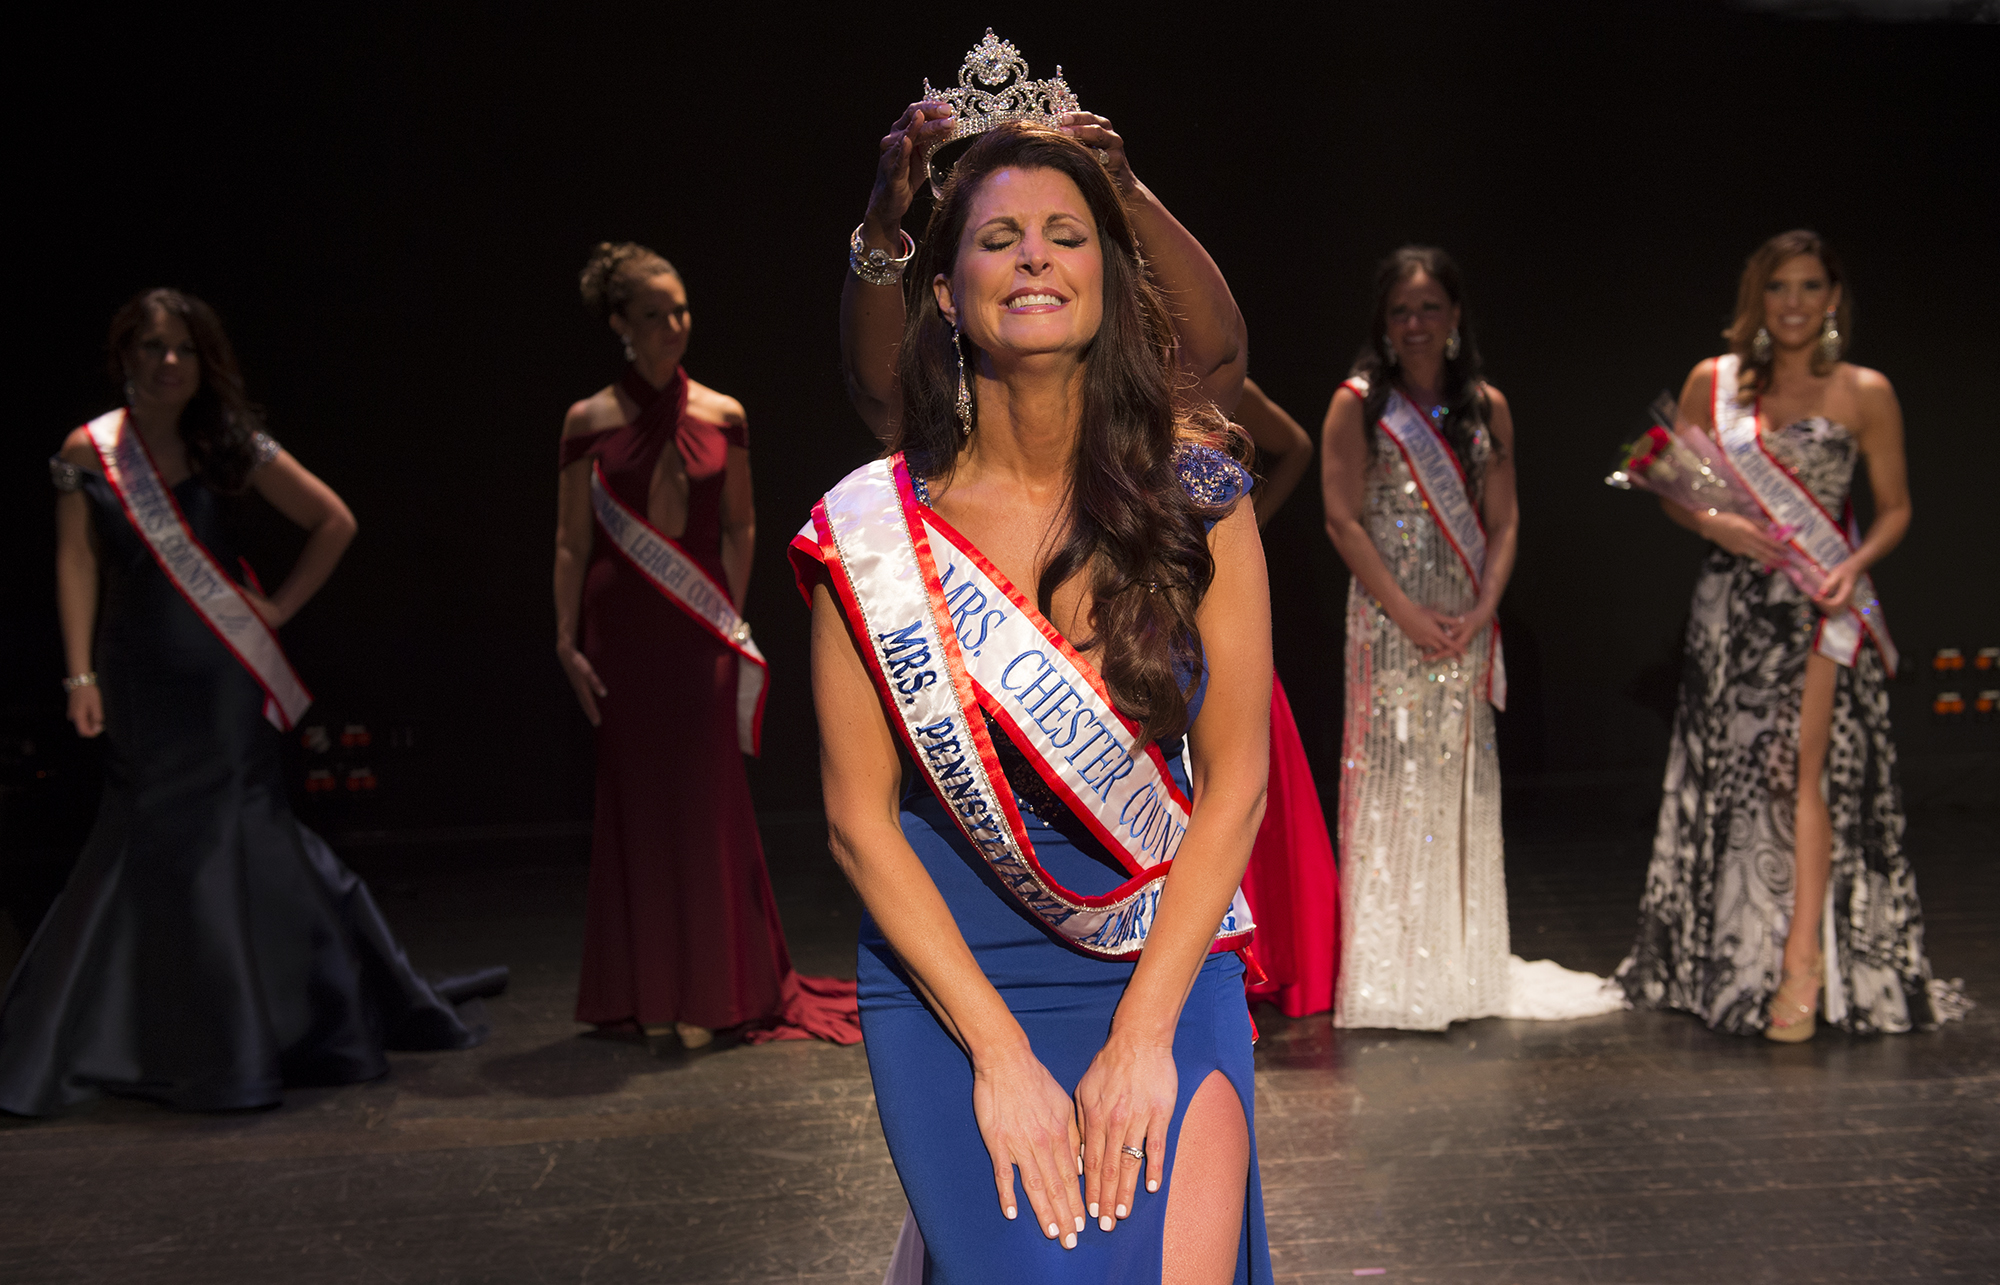 Mrs. Pennsylvania America Pageant 2017-Crowning